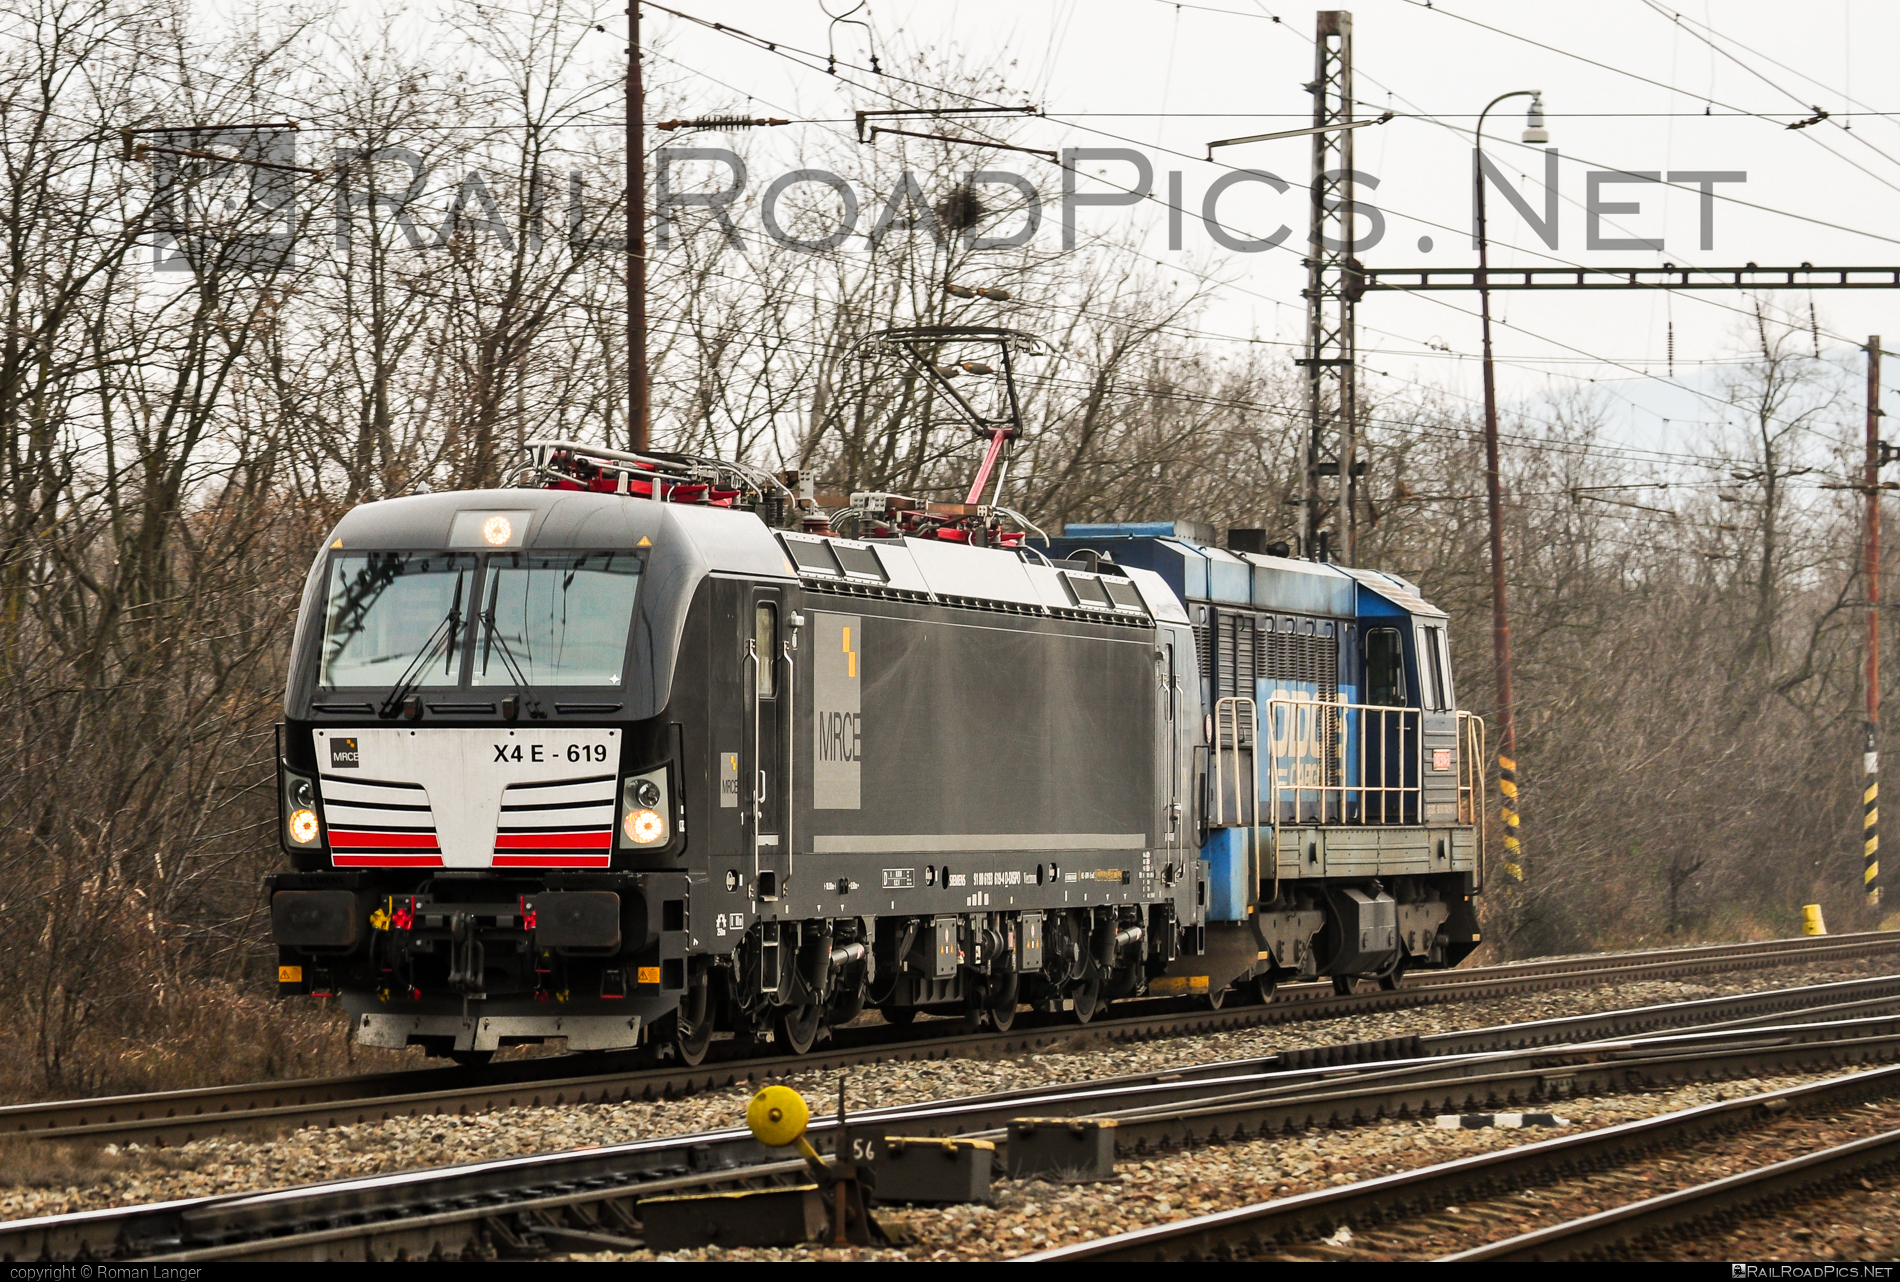 Siemens Vectron MS - 193 619-4 operated by Retrack Slovakia s. r. o. #dispolok #mitsuirailcapitaleurope #mitsuirailcapitaleuropegmbh #mrce #retrack #retrackslovakia #siemens #siemensvectron #siemensvectronms #vectron #vectronms